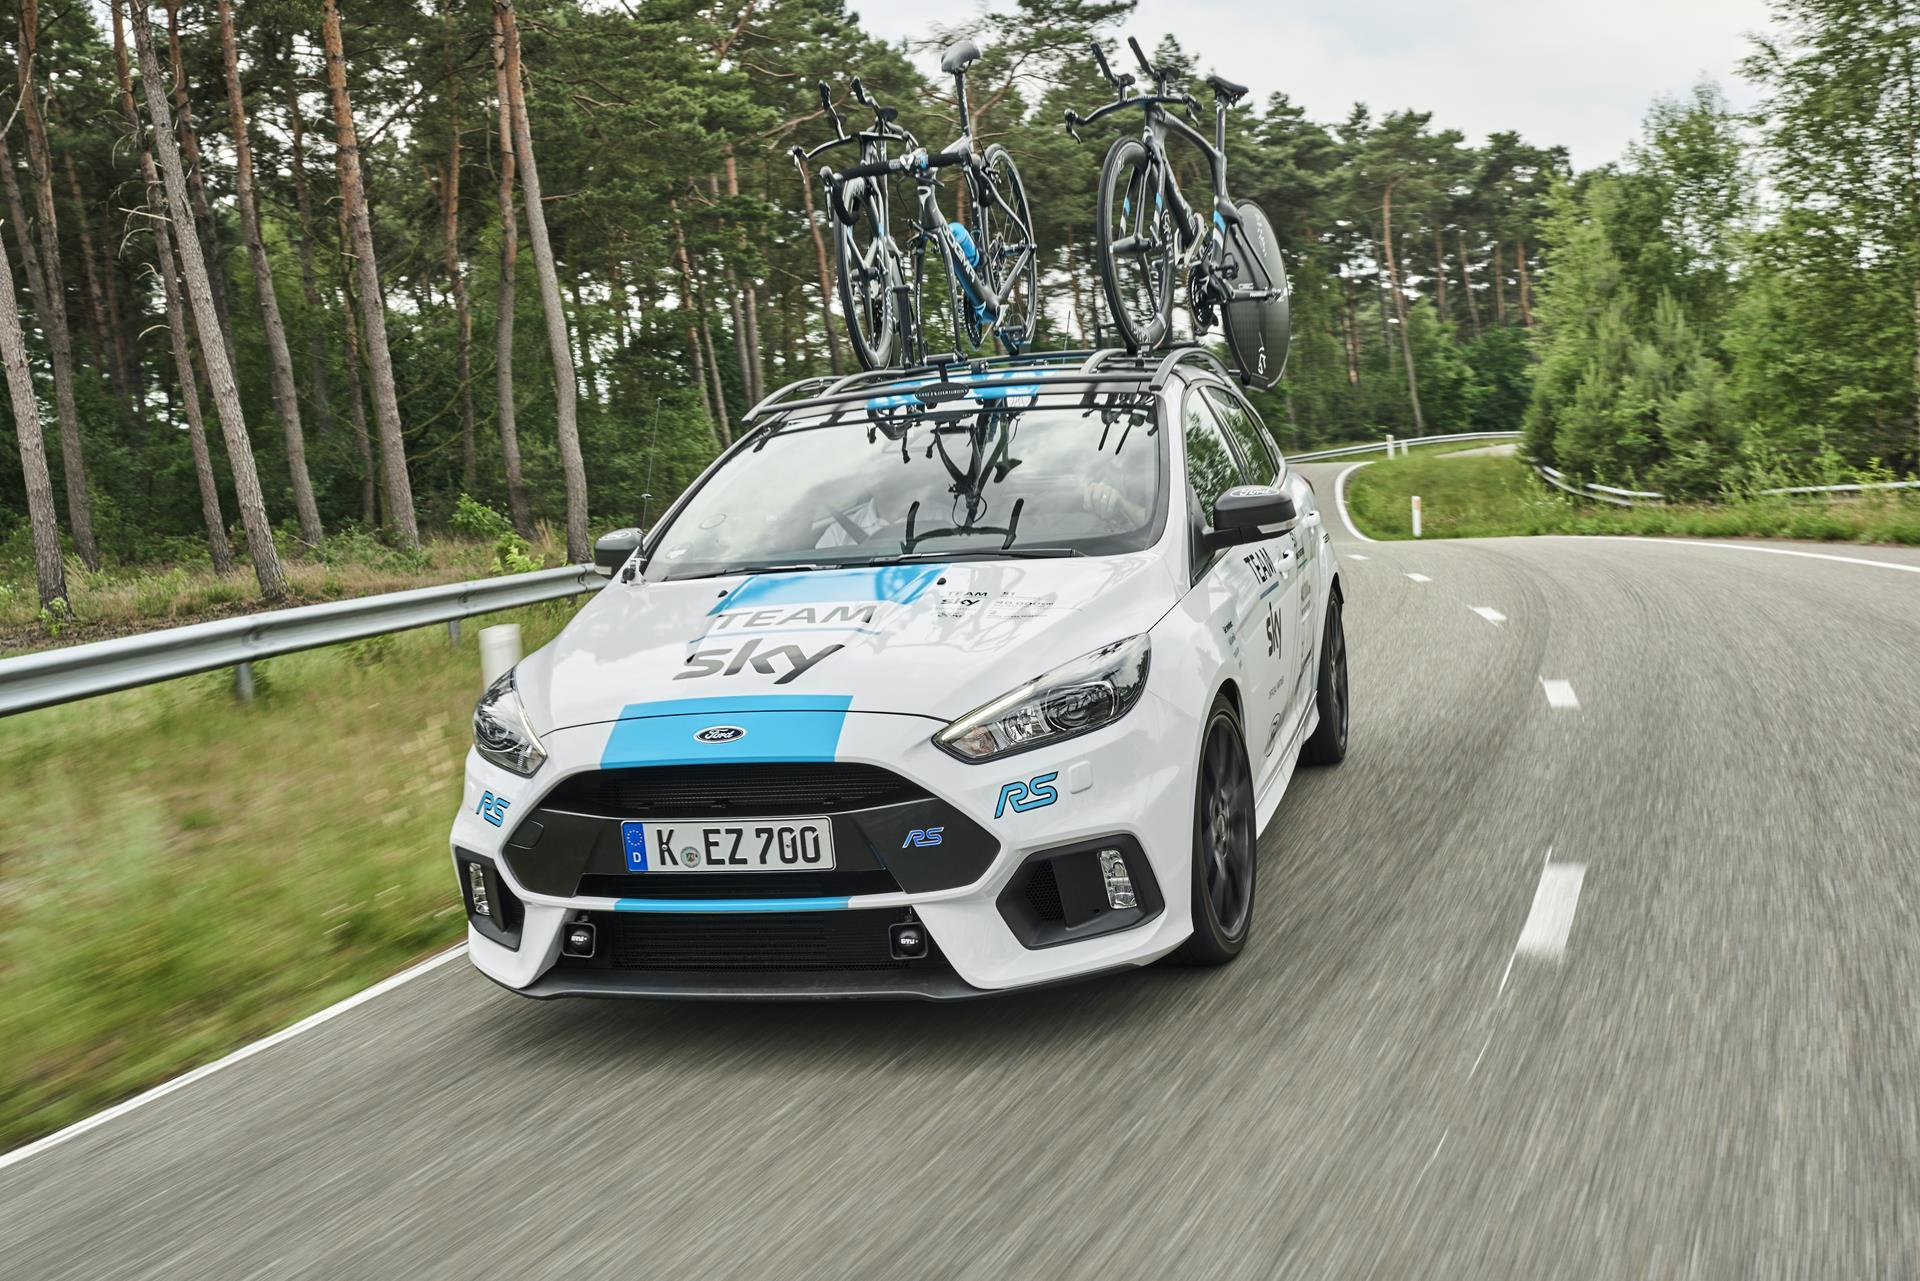 2017 Ford Focus RS Team Sky